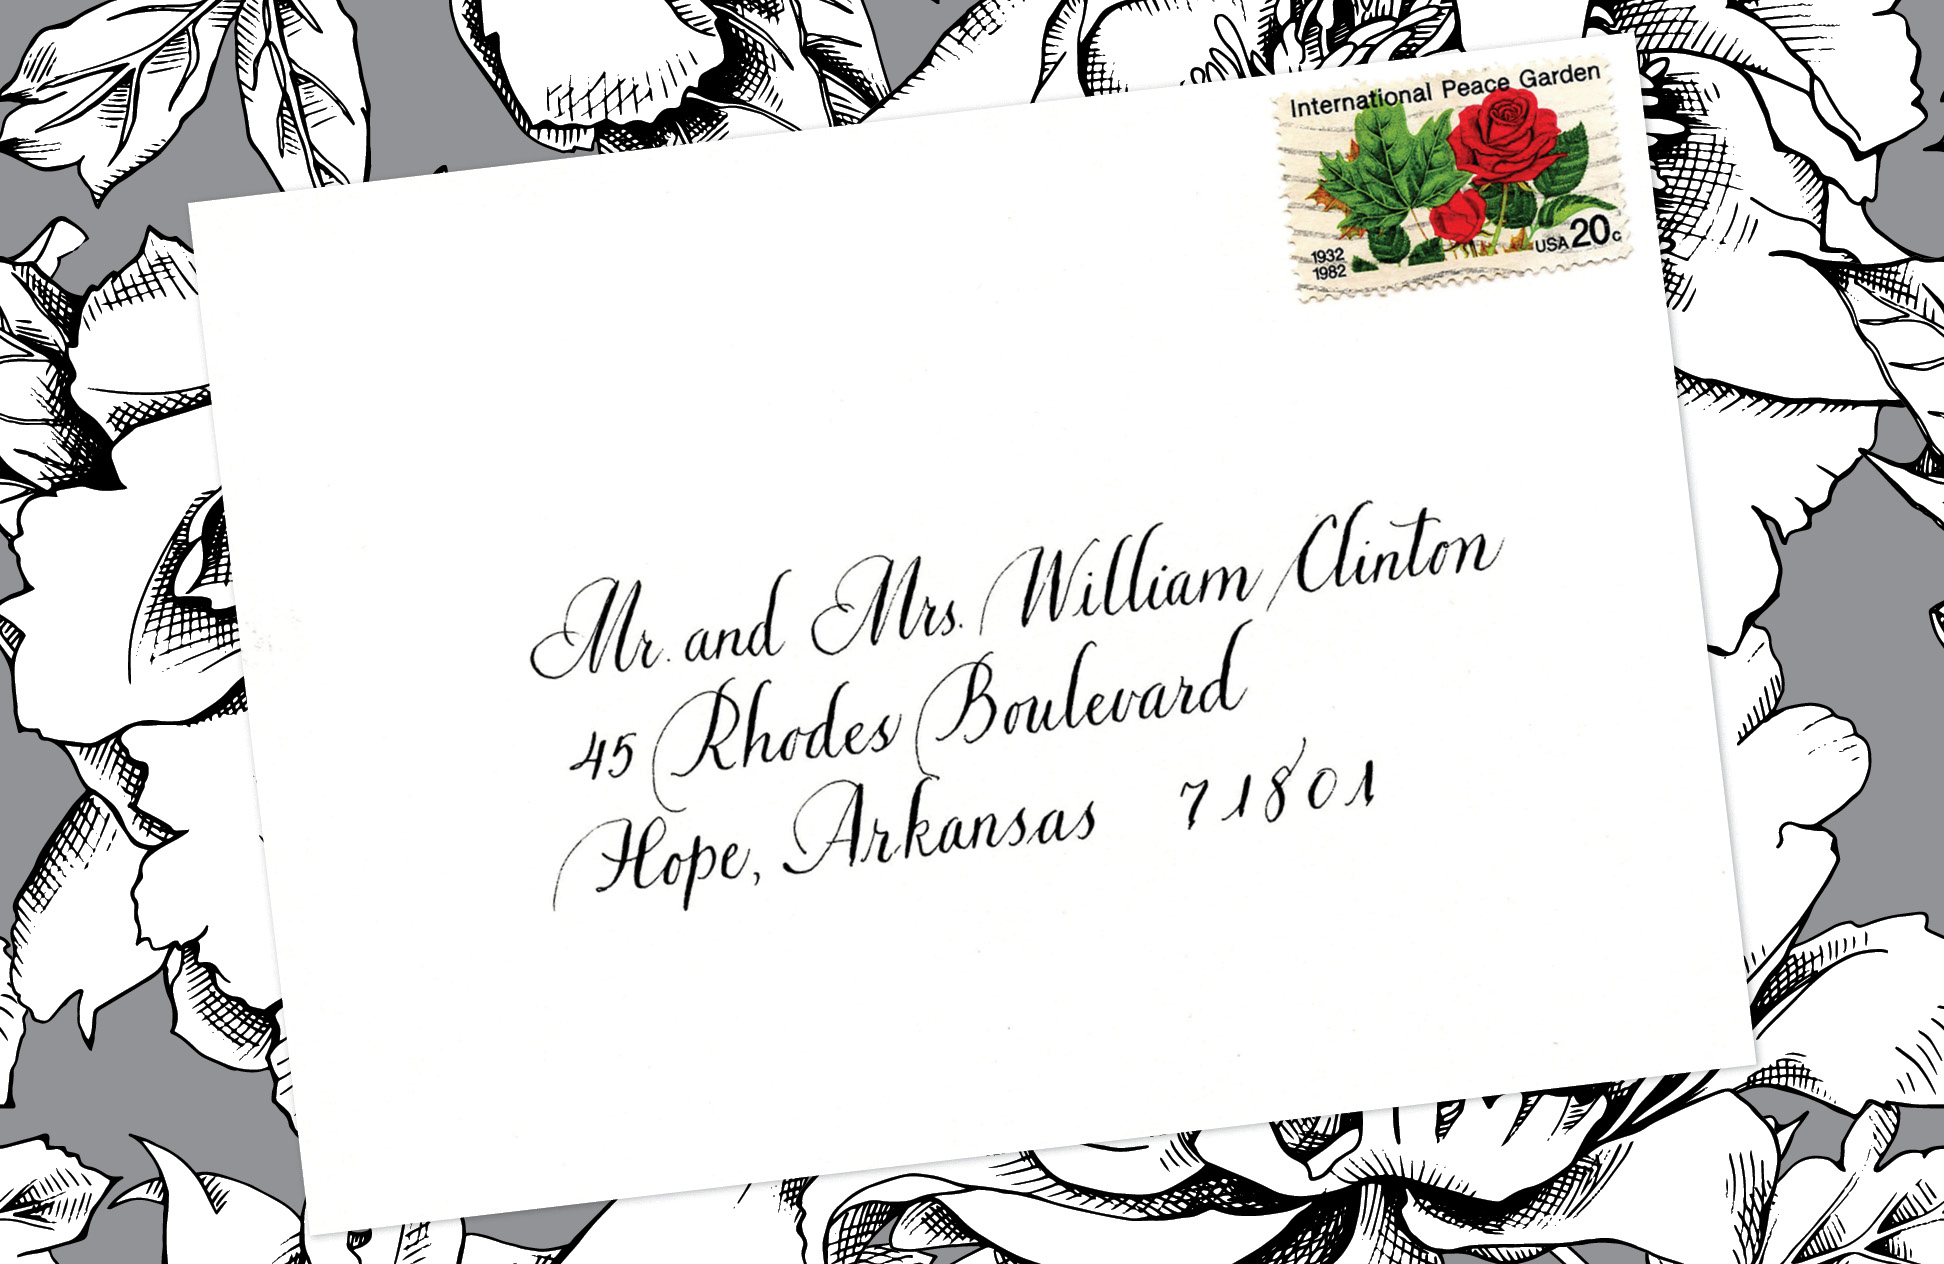 10. Style: Mr. and Mrs. William Clinton (Bickham)